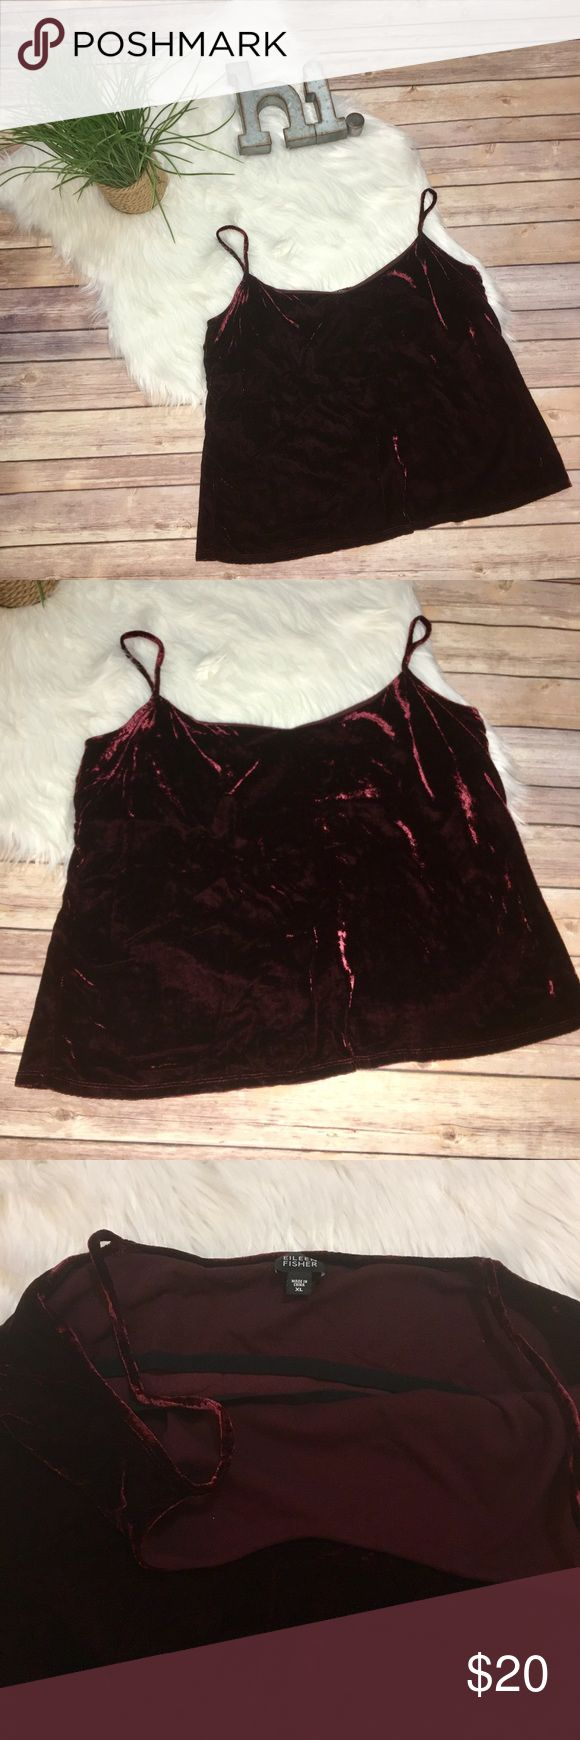 Vintage Eileen Fisher velvet cami with shelf bra Beautiful vintage camisole with built in shelf-bra. This velvet spaghetti strap camisole will be perfect for layering - this camisole appears to have a more boxy fit. Eileen Fisher Tops Camisoles